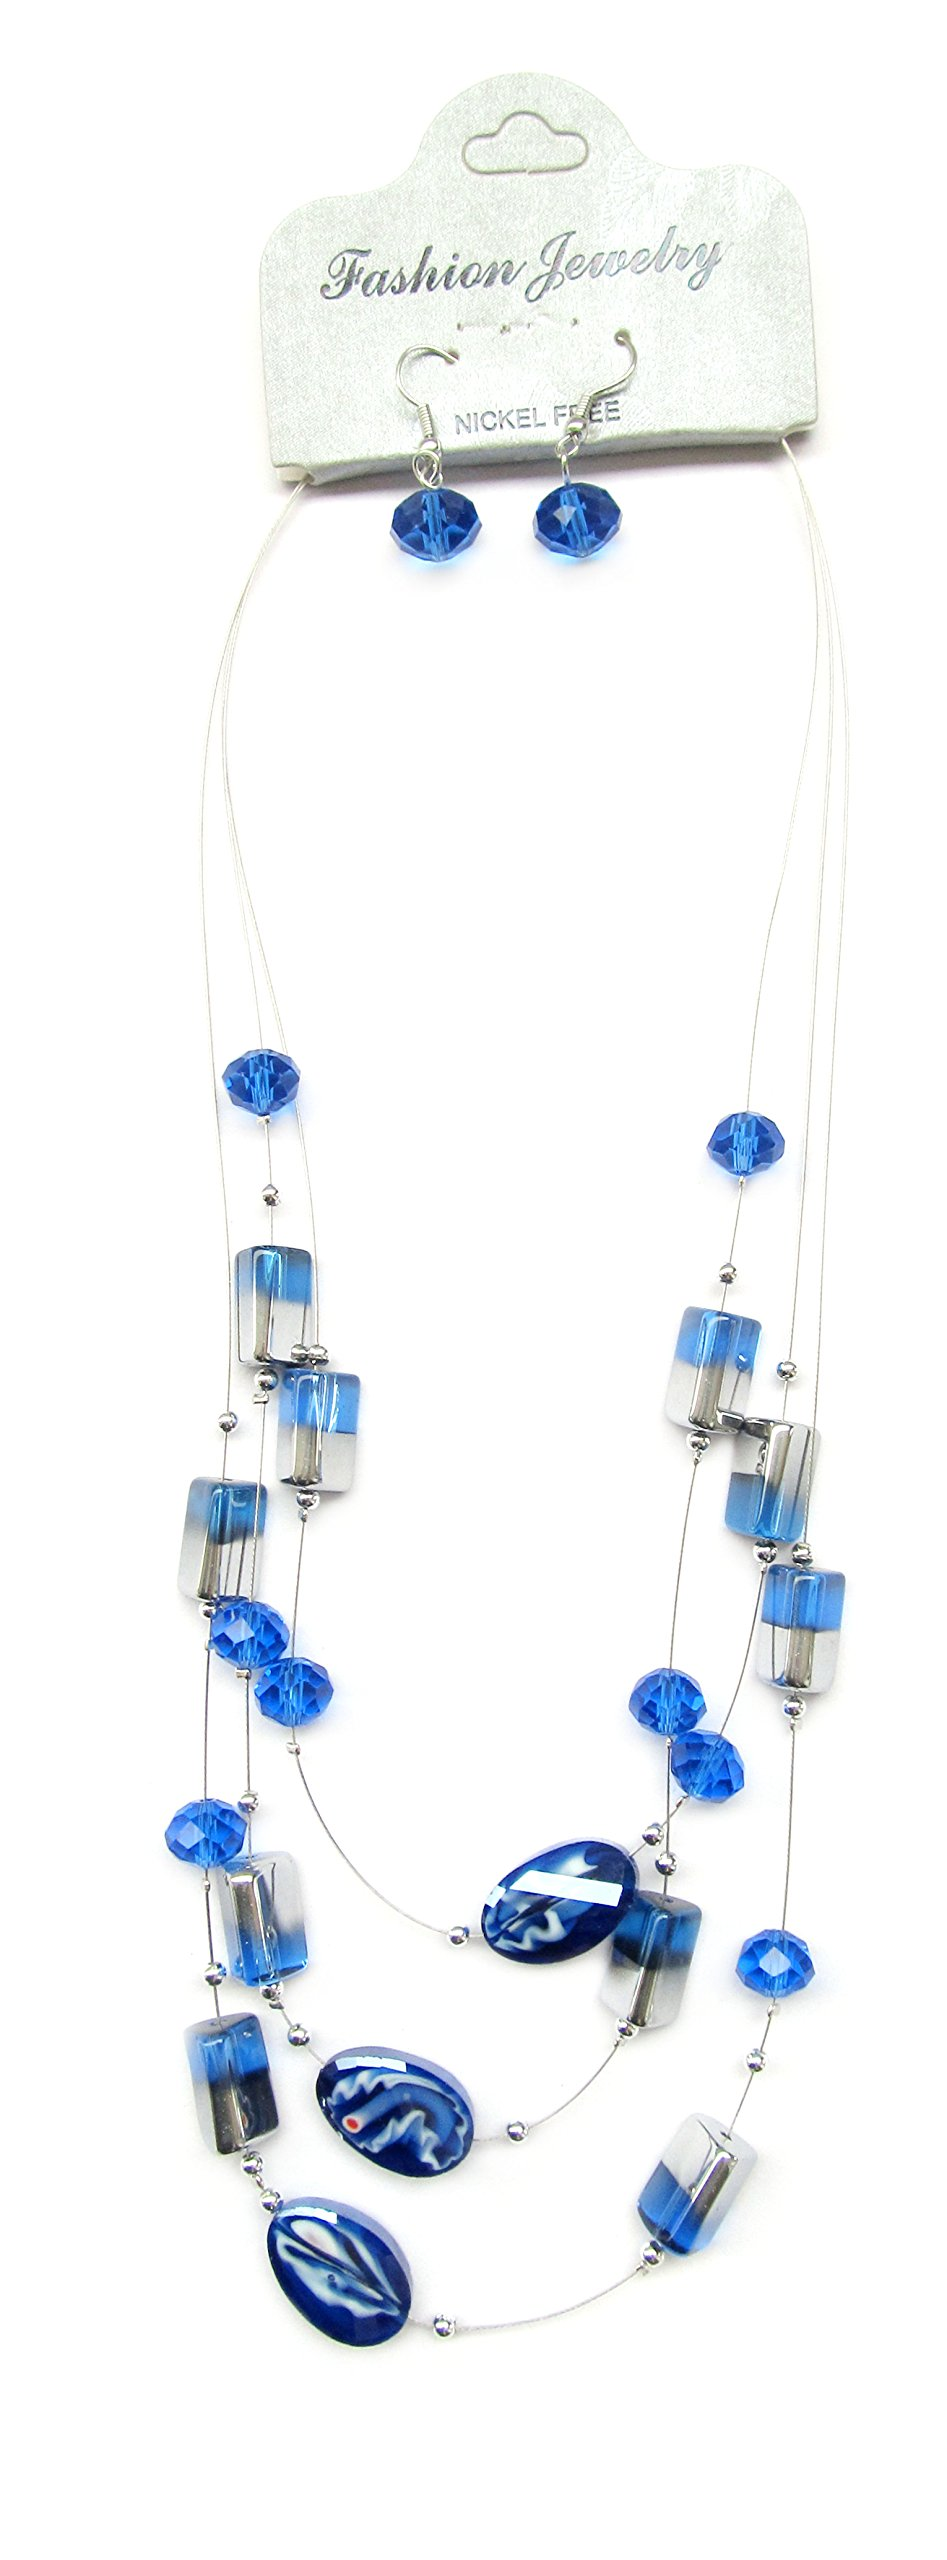 Linpeng Necklace Earrings Set/Blue & Silver Glass Beads / 3 Strands Layered Necklace Length Around 21